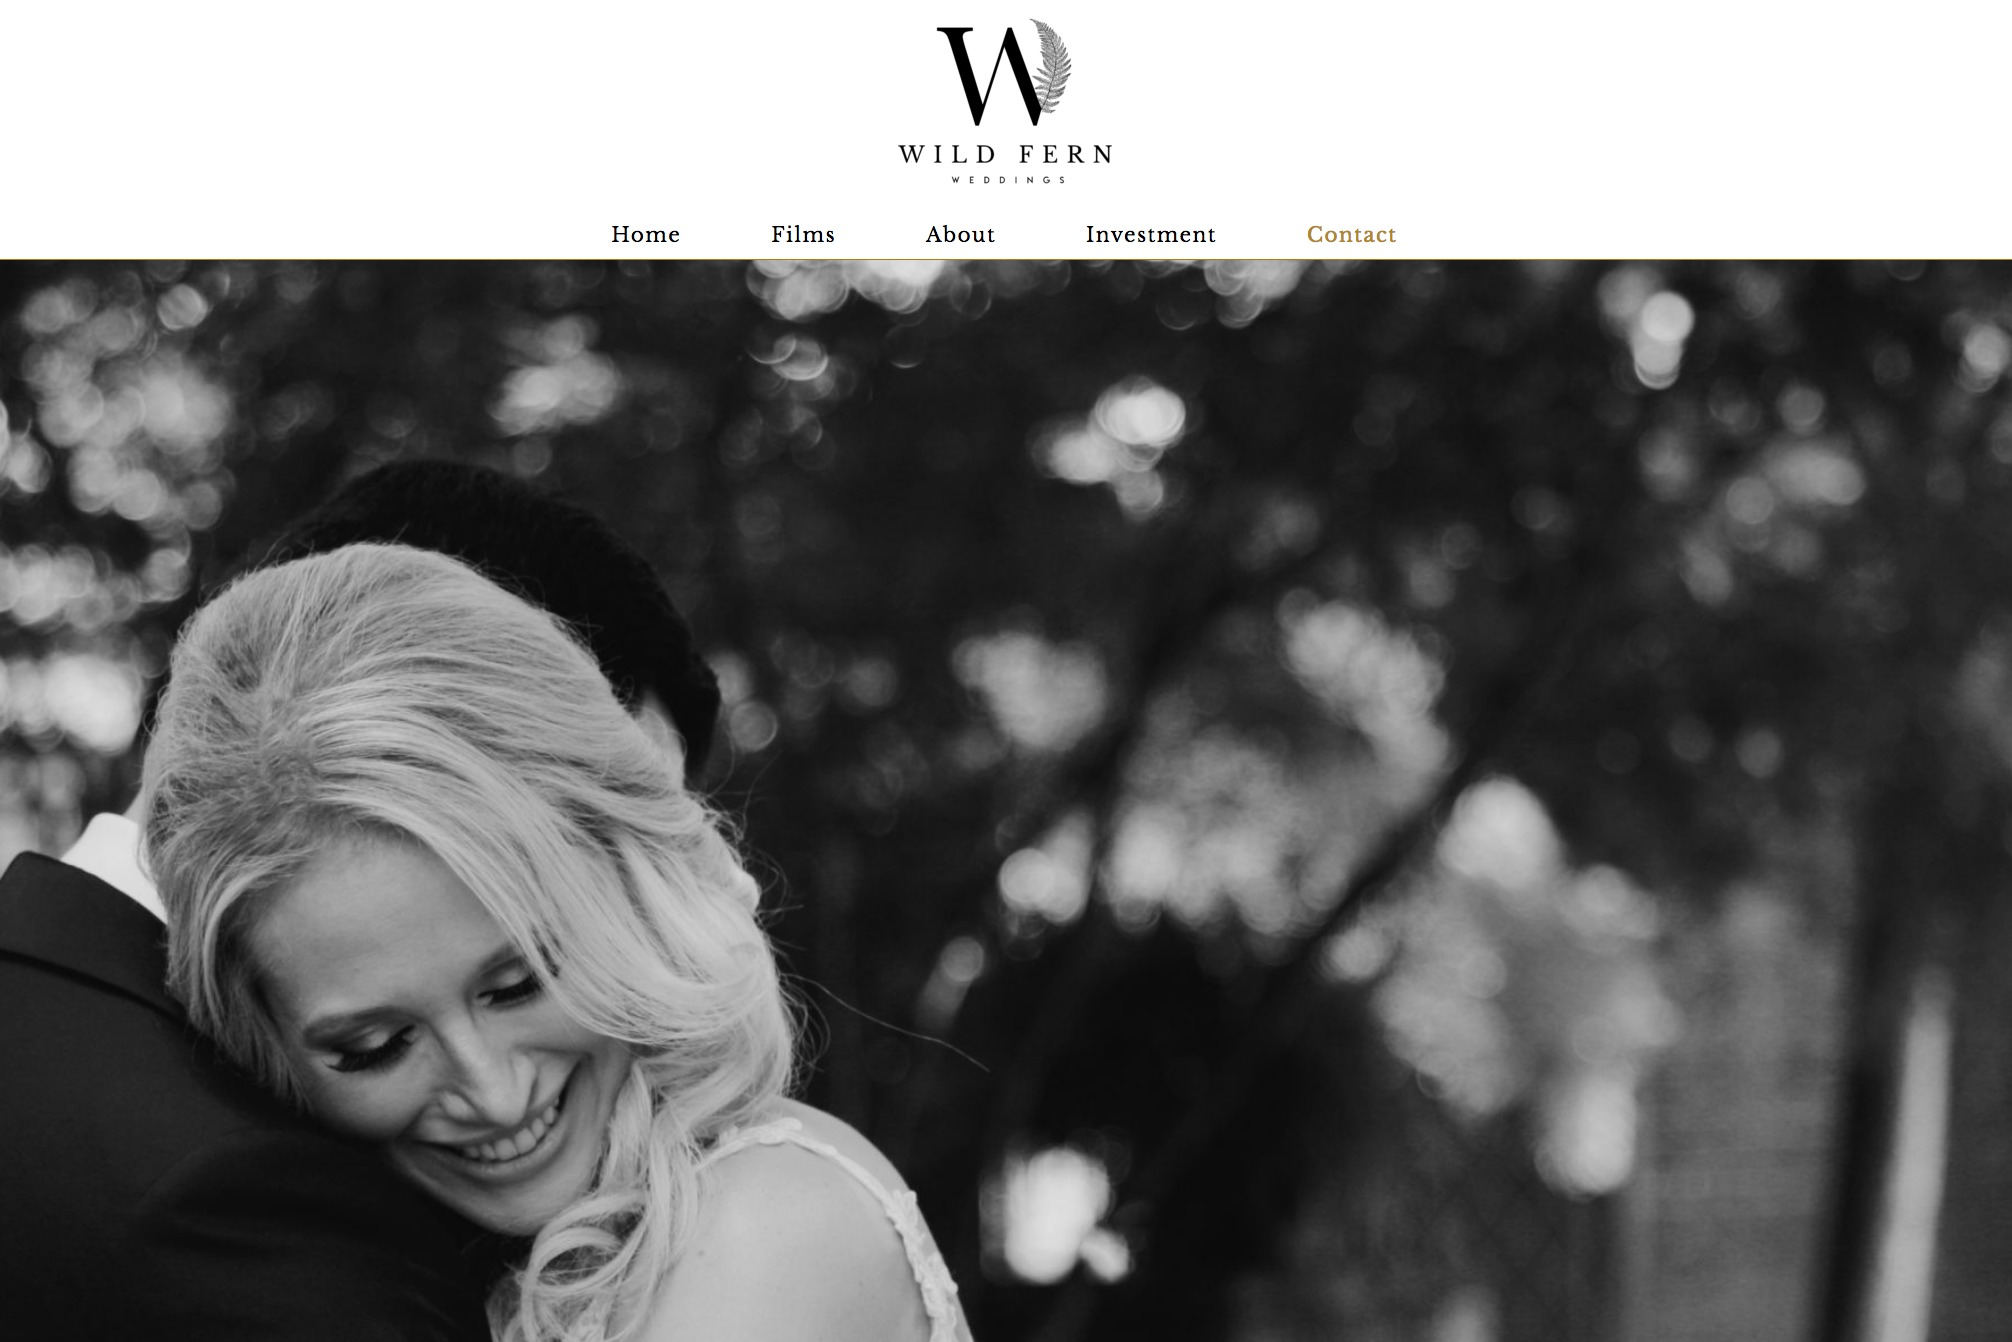 Web Design - Wild Fern Weddings